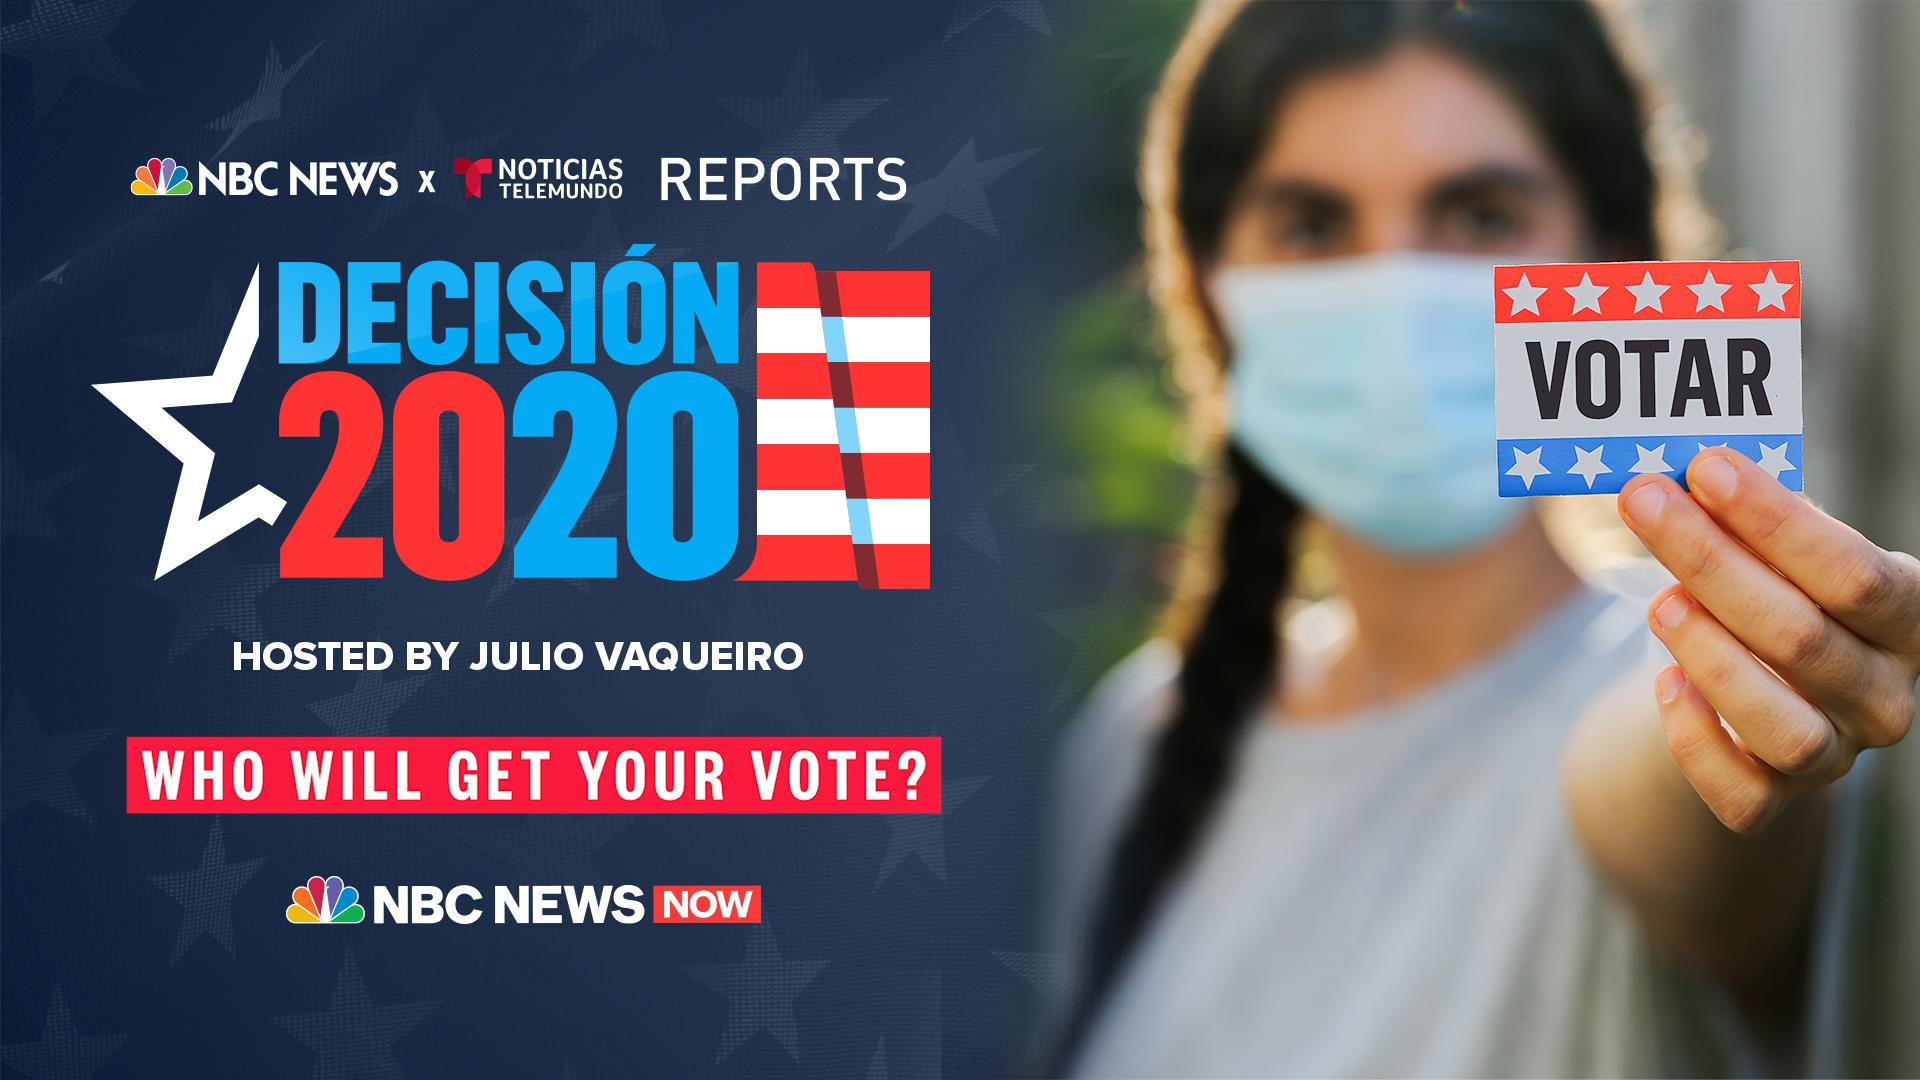 Decision 2020 Latinos At The Center Of The Election